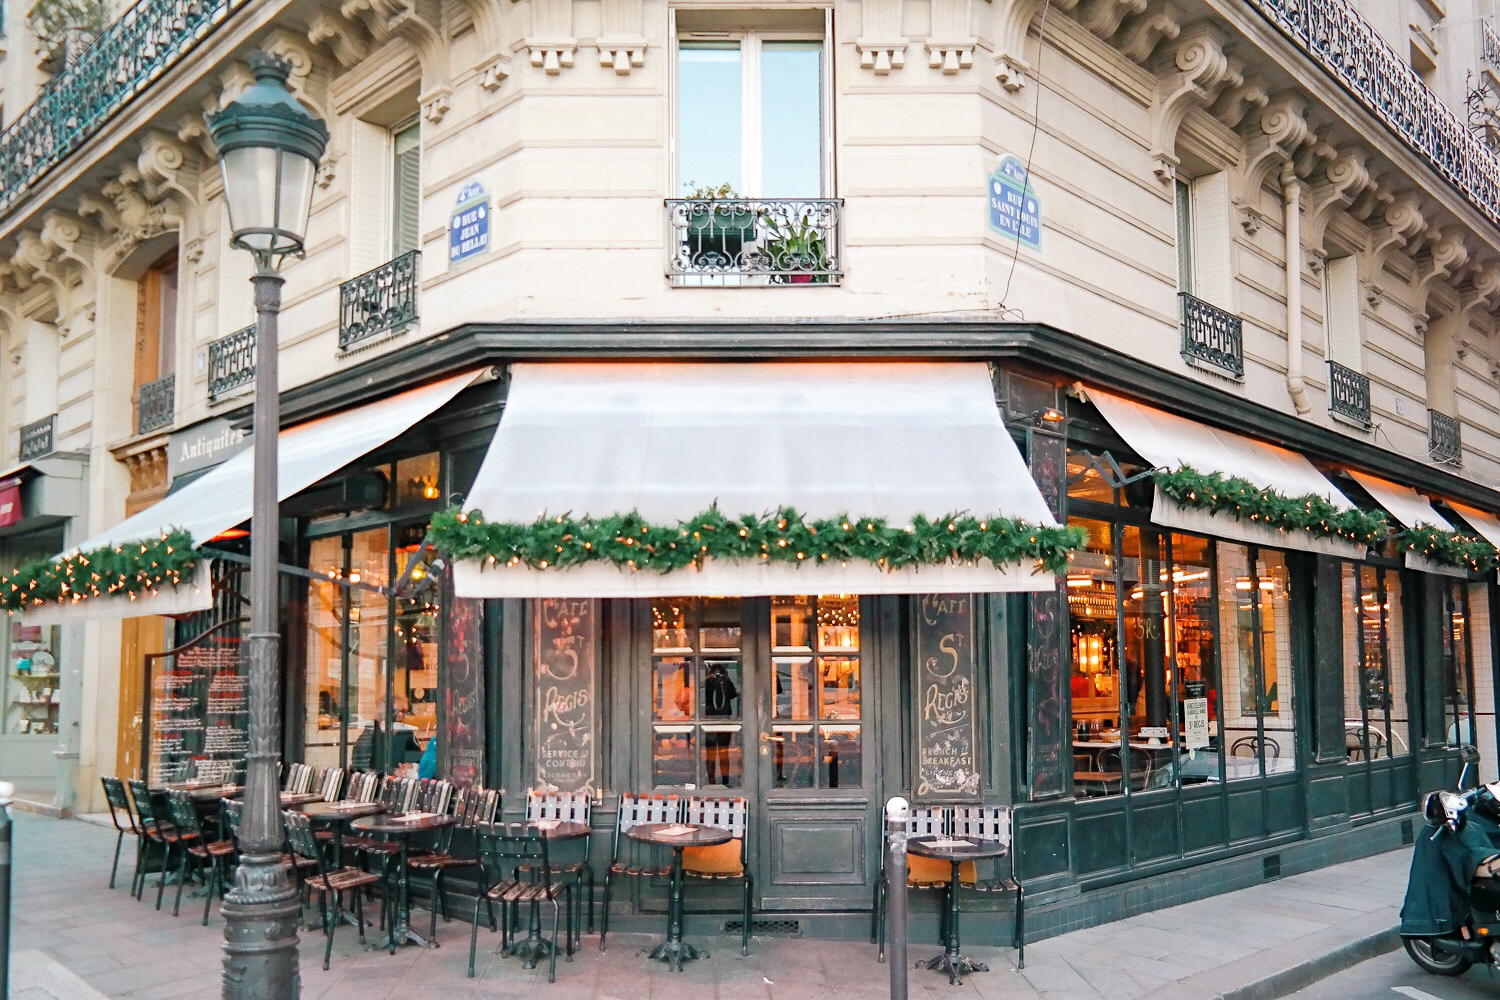 Cafe St. Regis in Paris at Christmas time